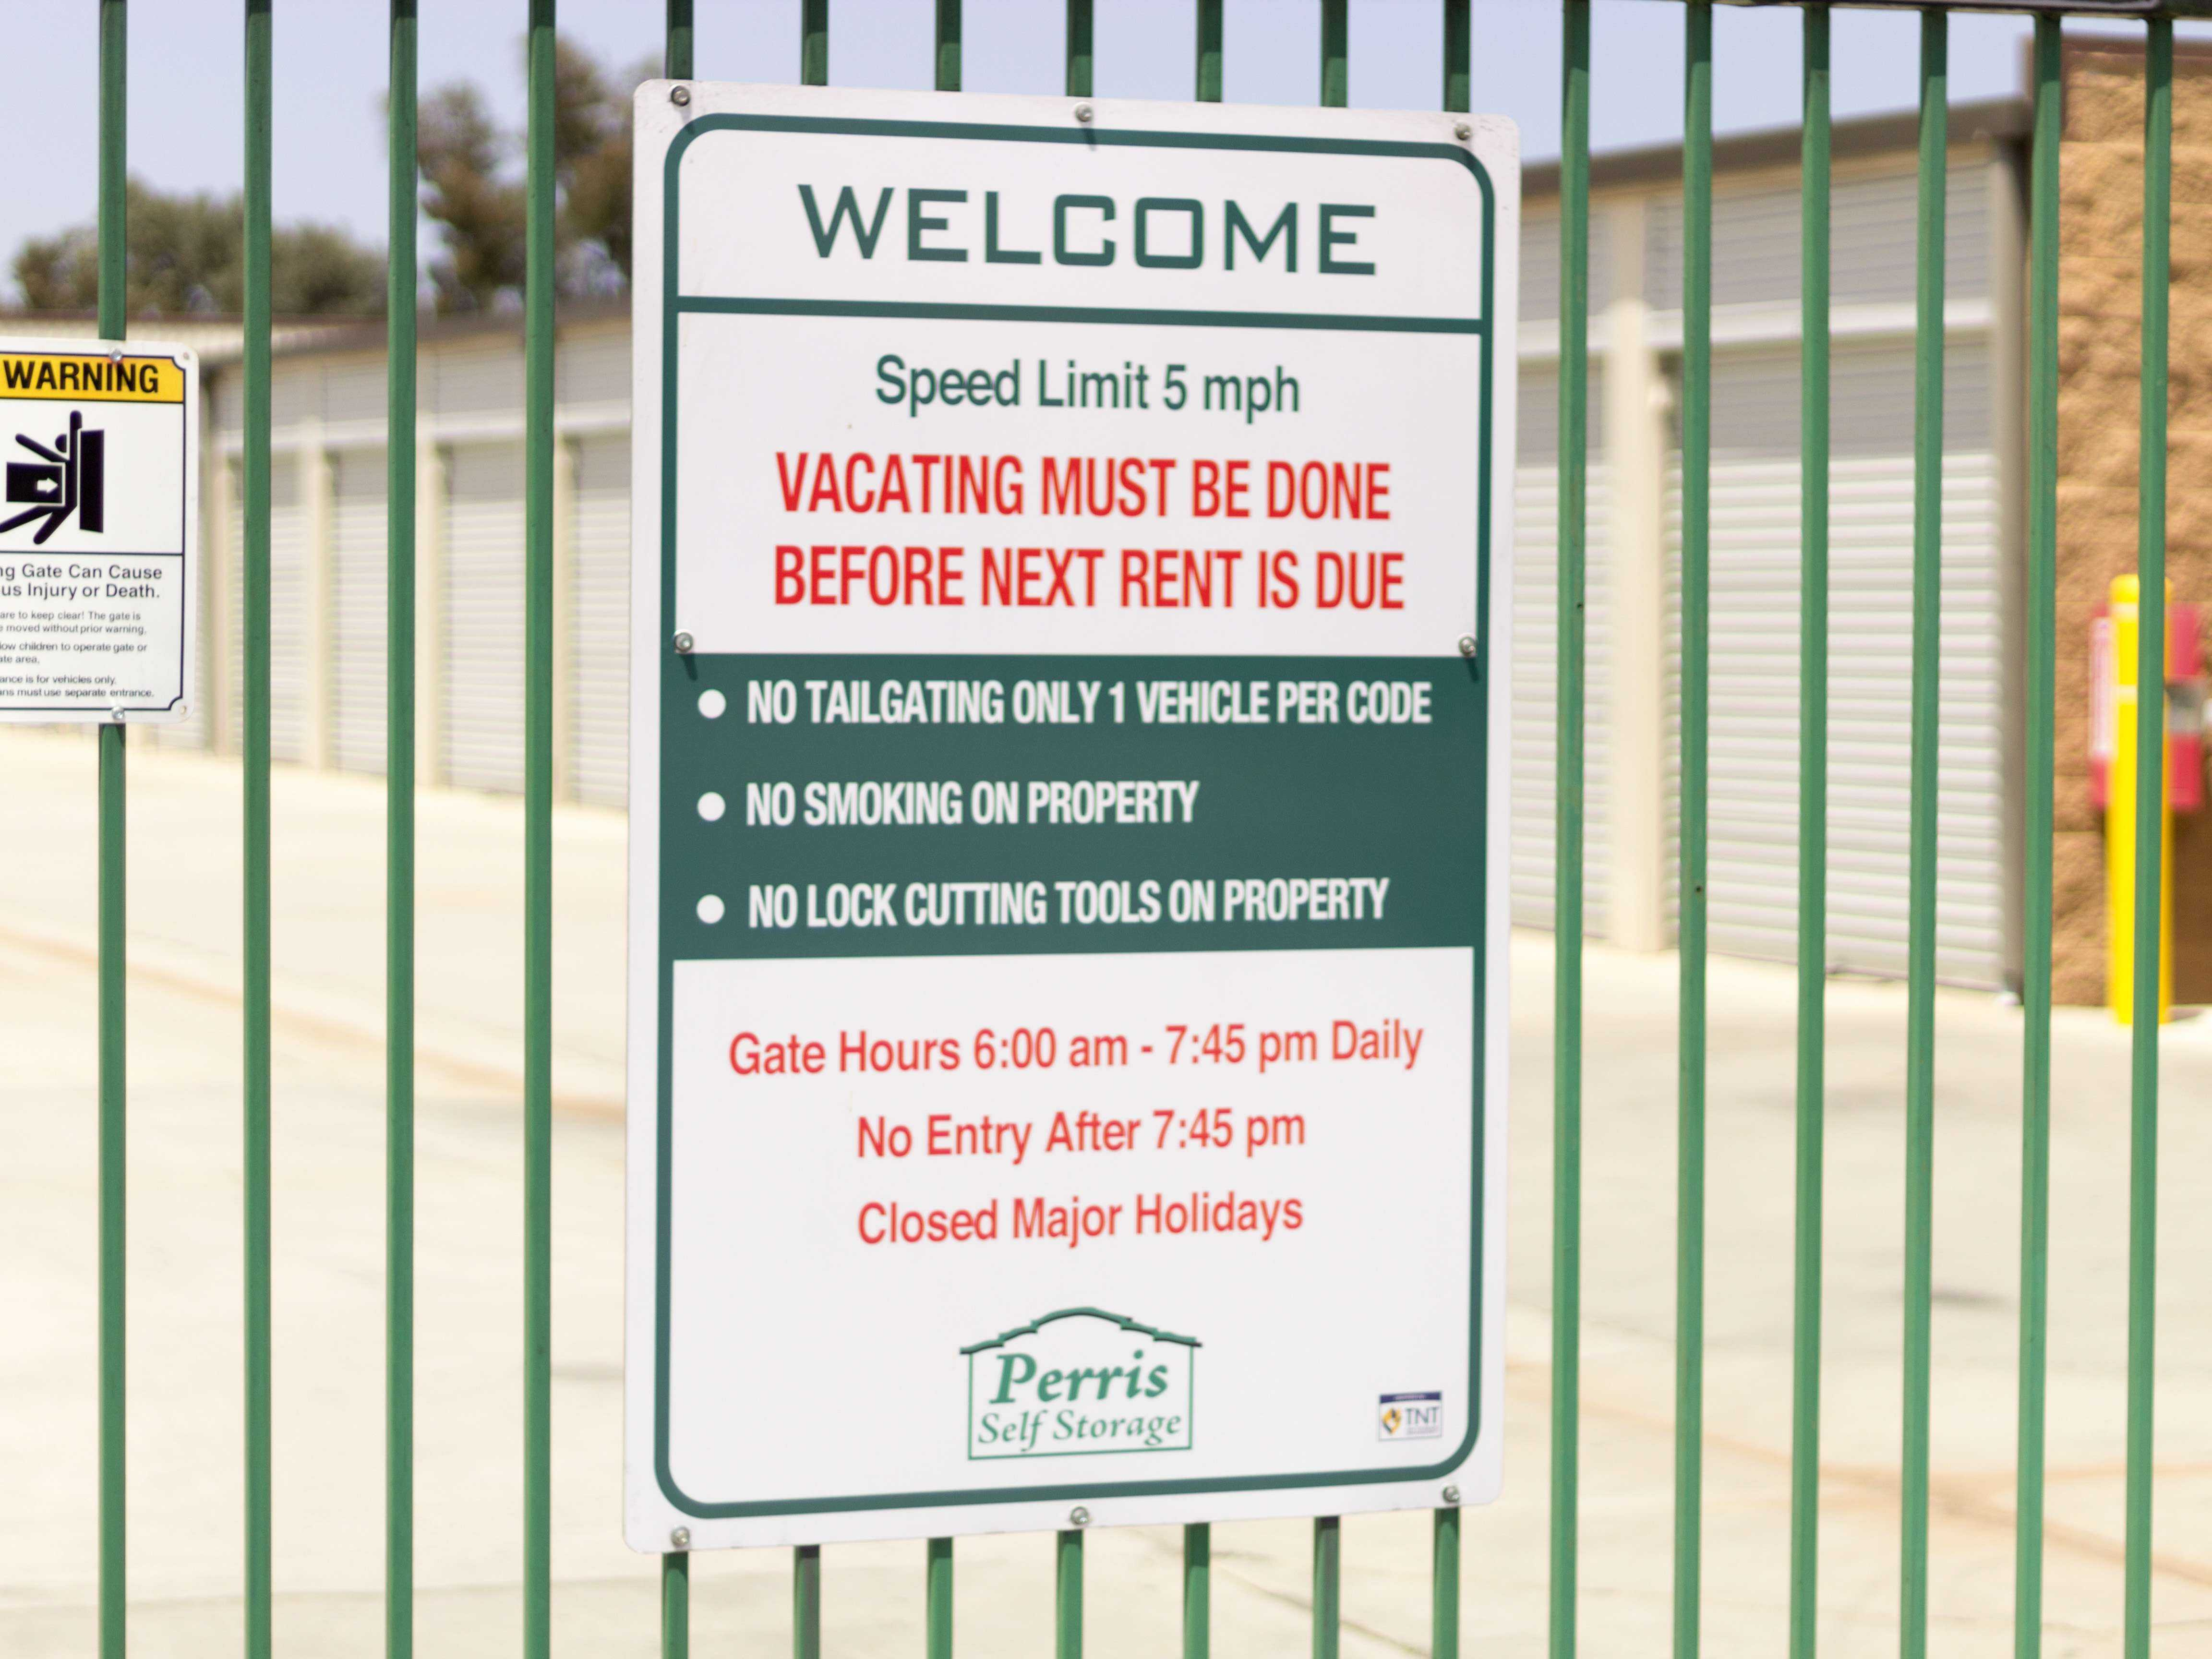 A welcome sign posted on gated entrance to outdoor storage units with hours of 6:00am to 7:45am daily